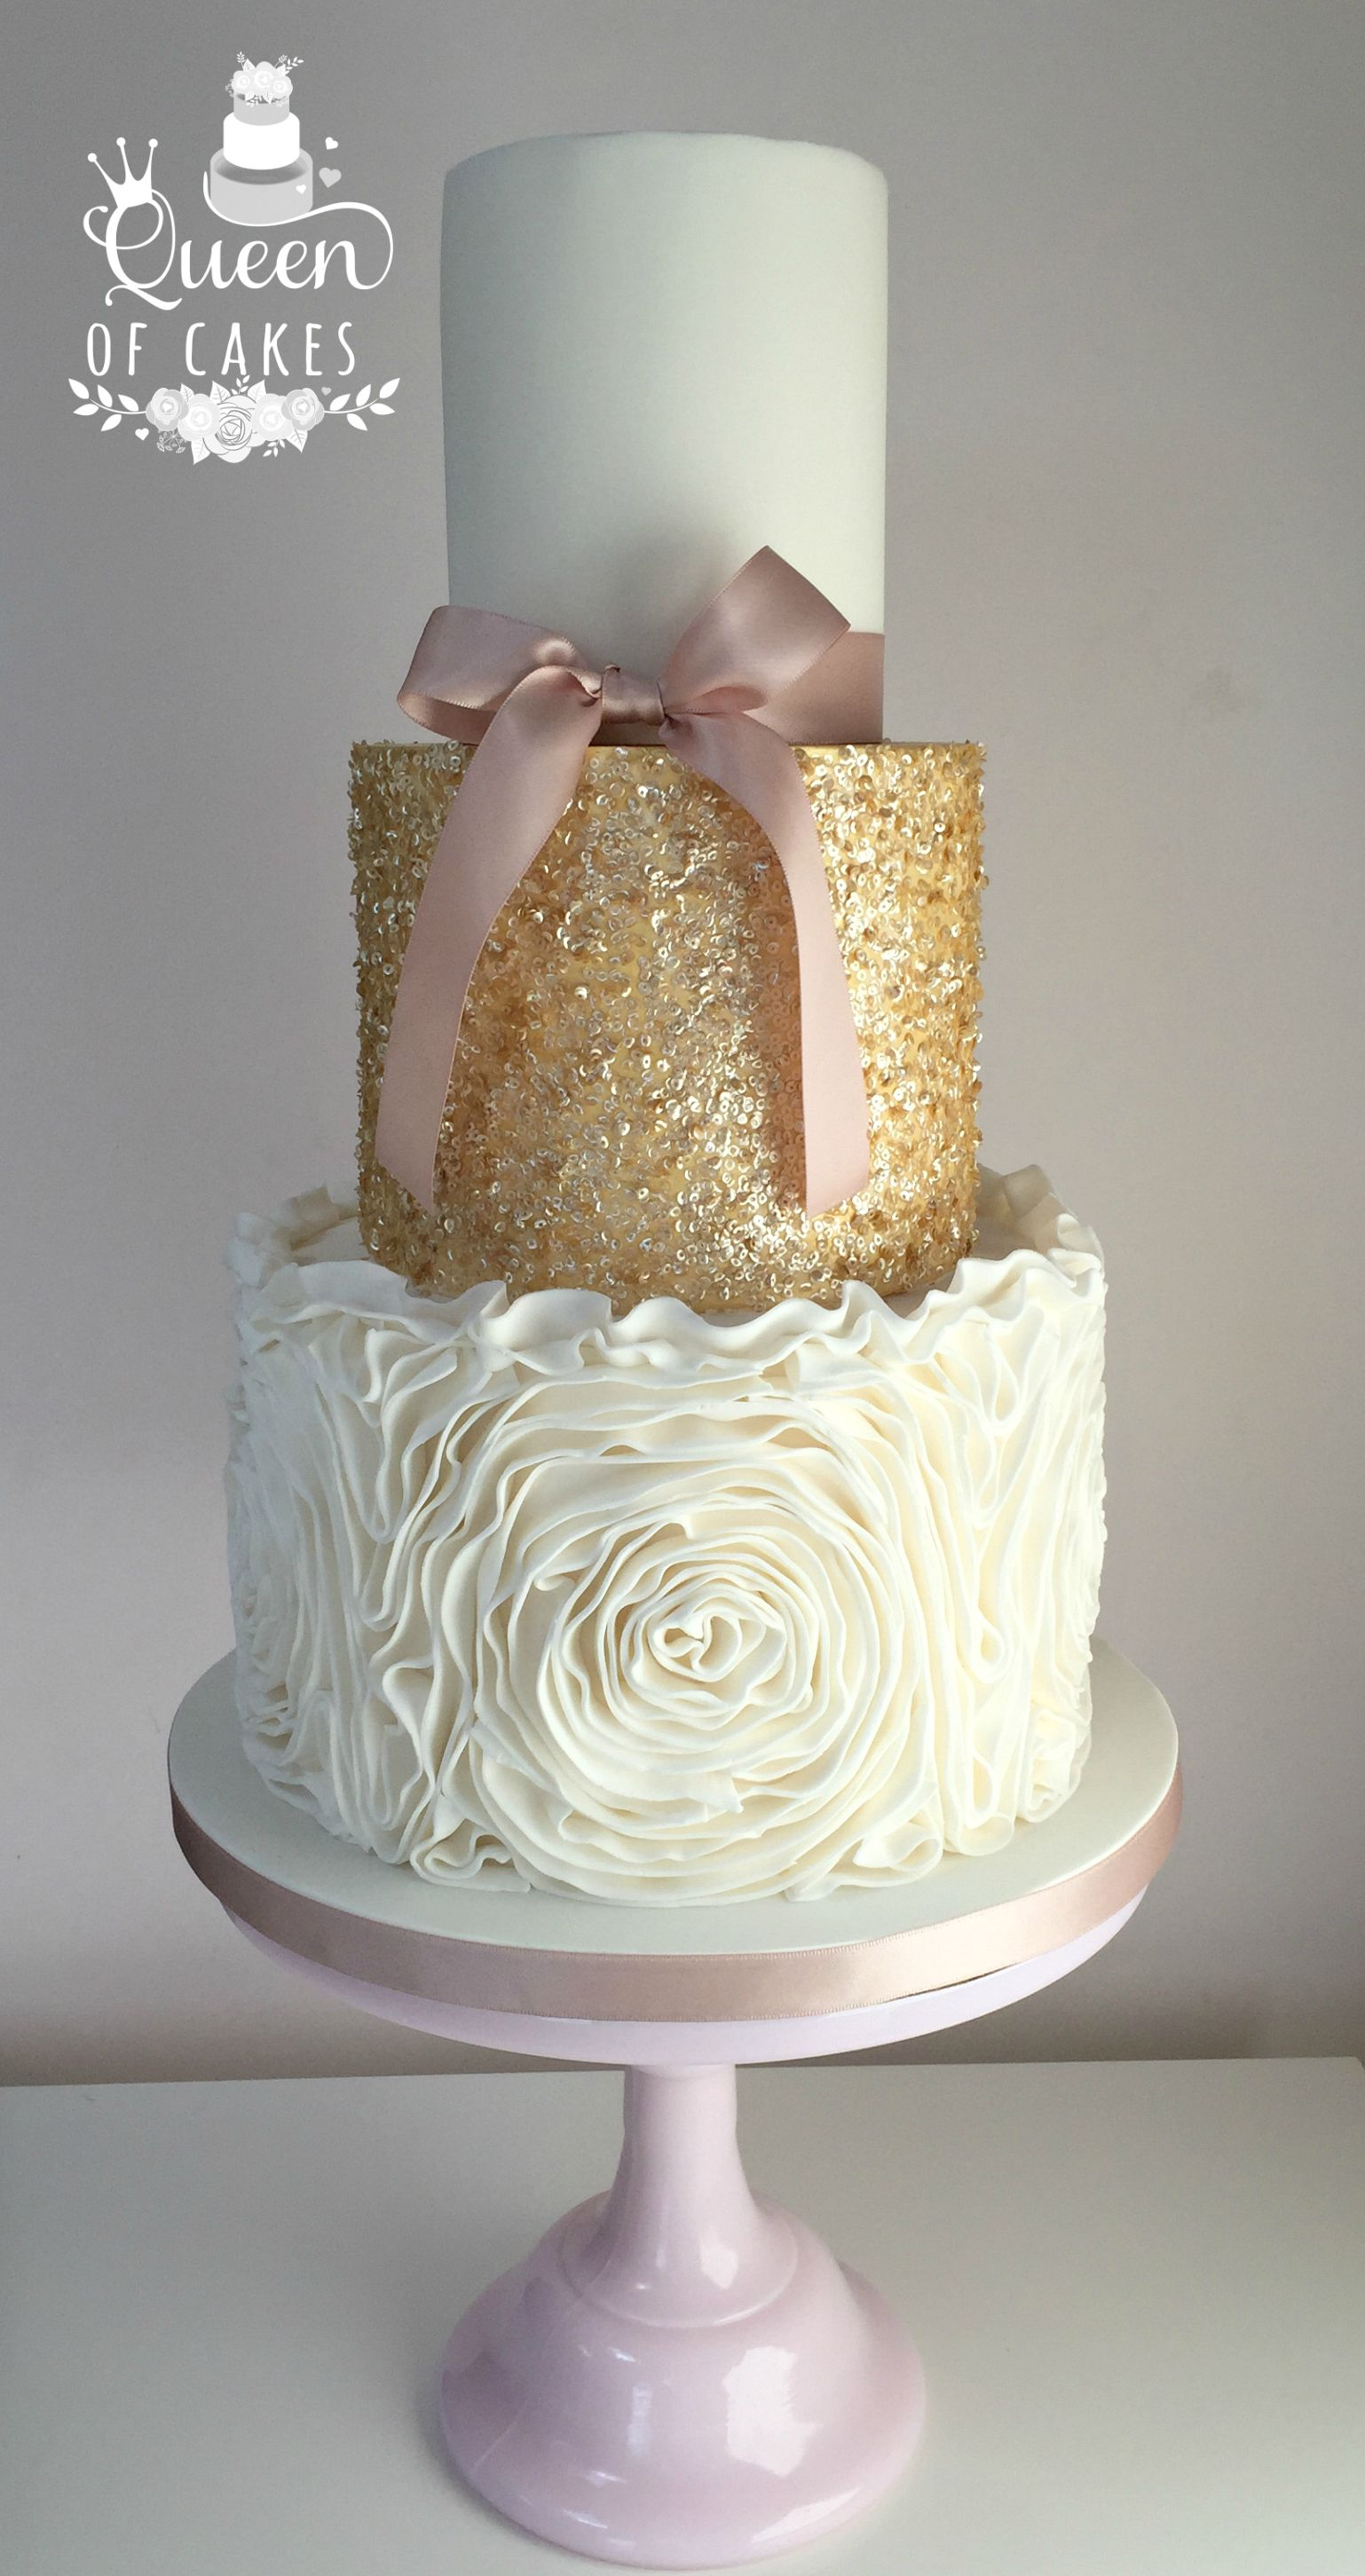 Sparkly Gold Sequins And Ruffles Wedding Cake By Queen Of